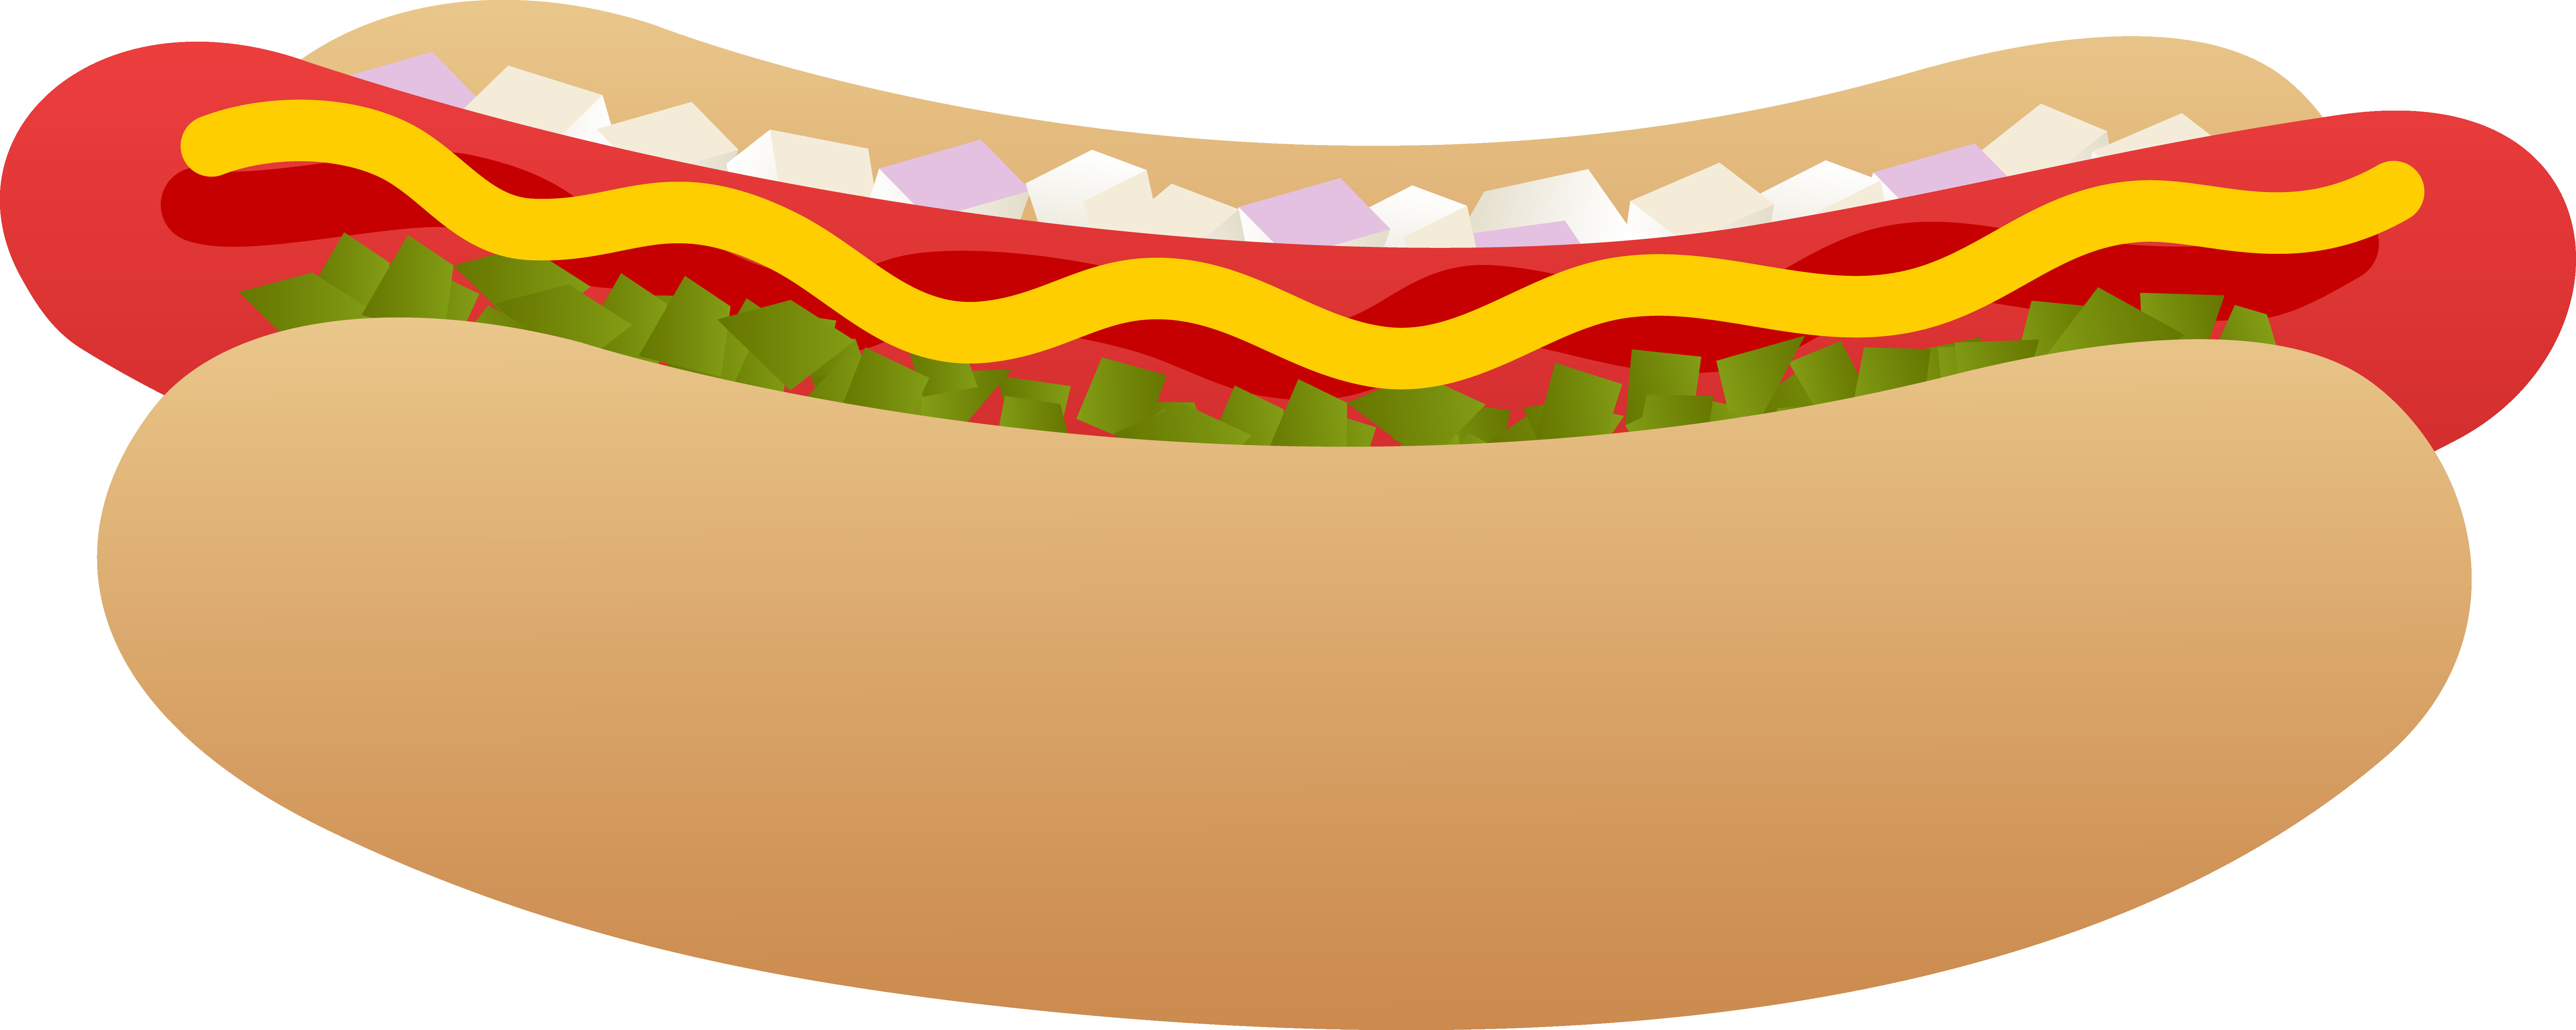 7846x3137 Clipart Of Corn Dog